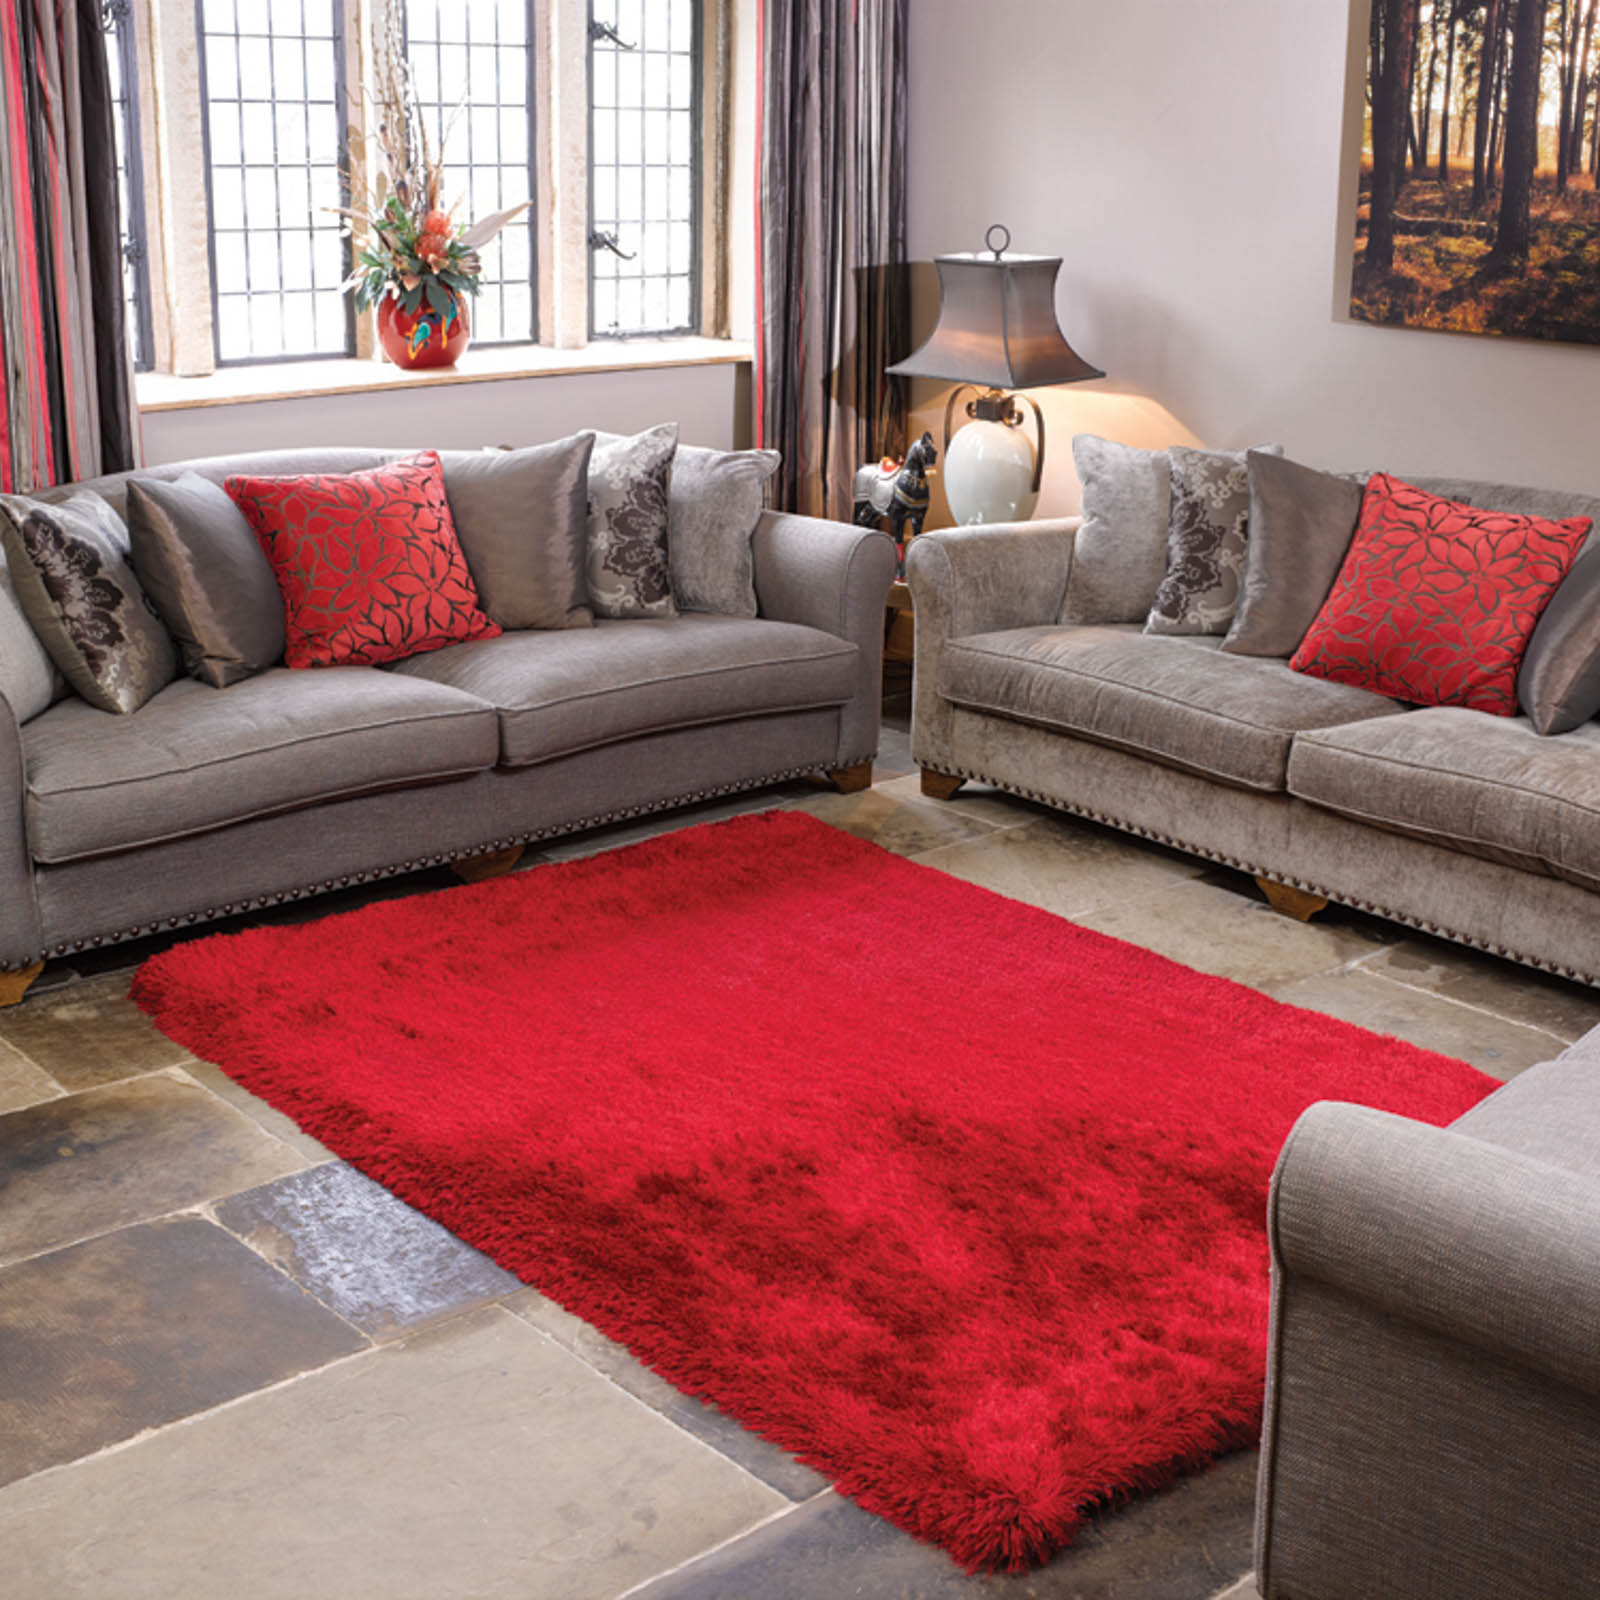 Pearl Shaggy Rugs in Red